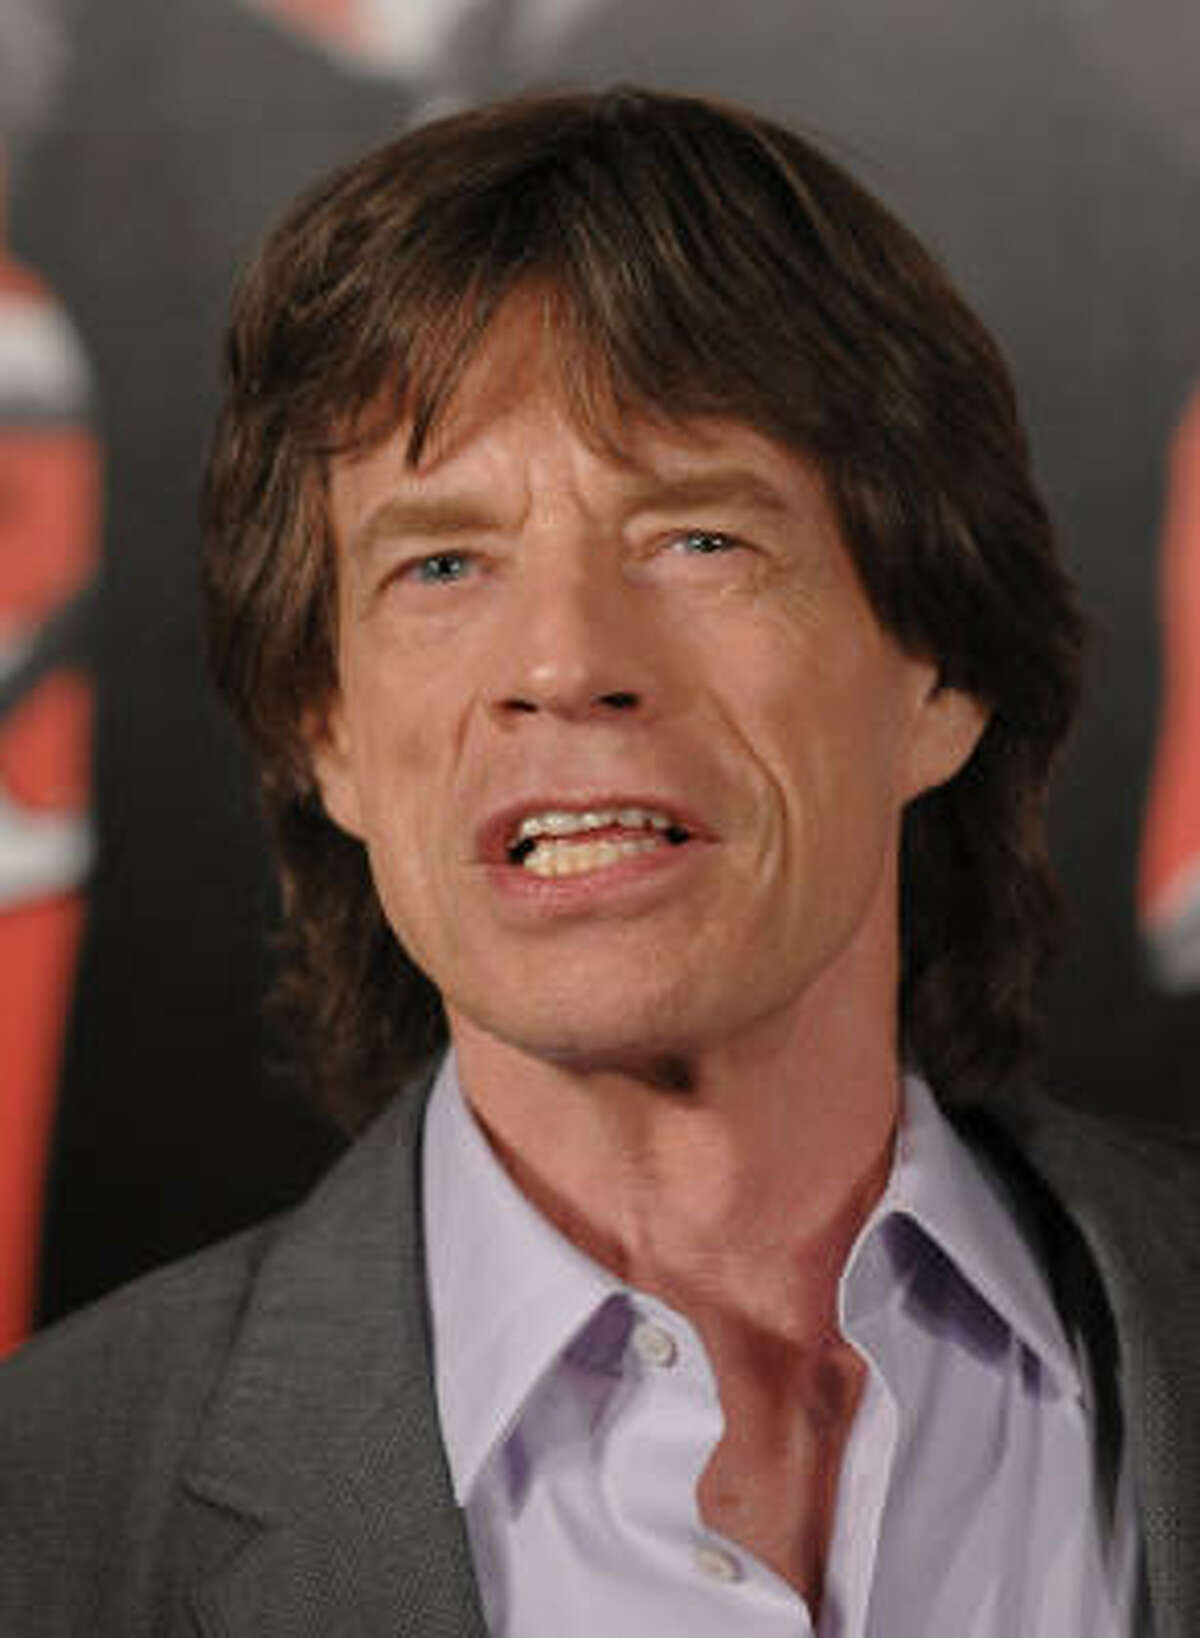 Artist: Mick Jagger (Rolling Stones) Hear a sample. Agree or disagree? Tell us in the comments.